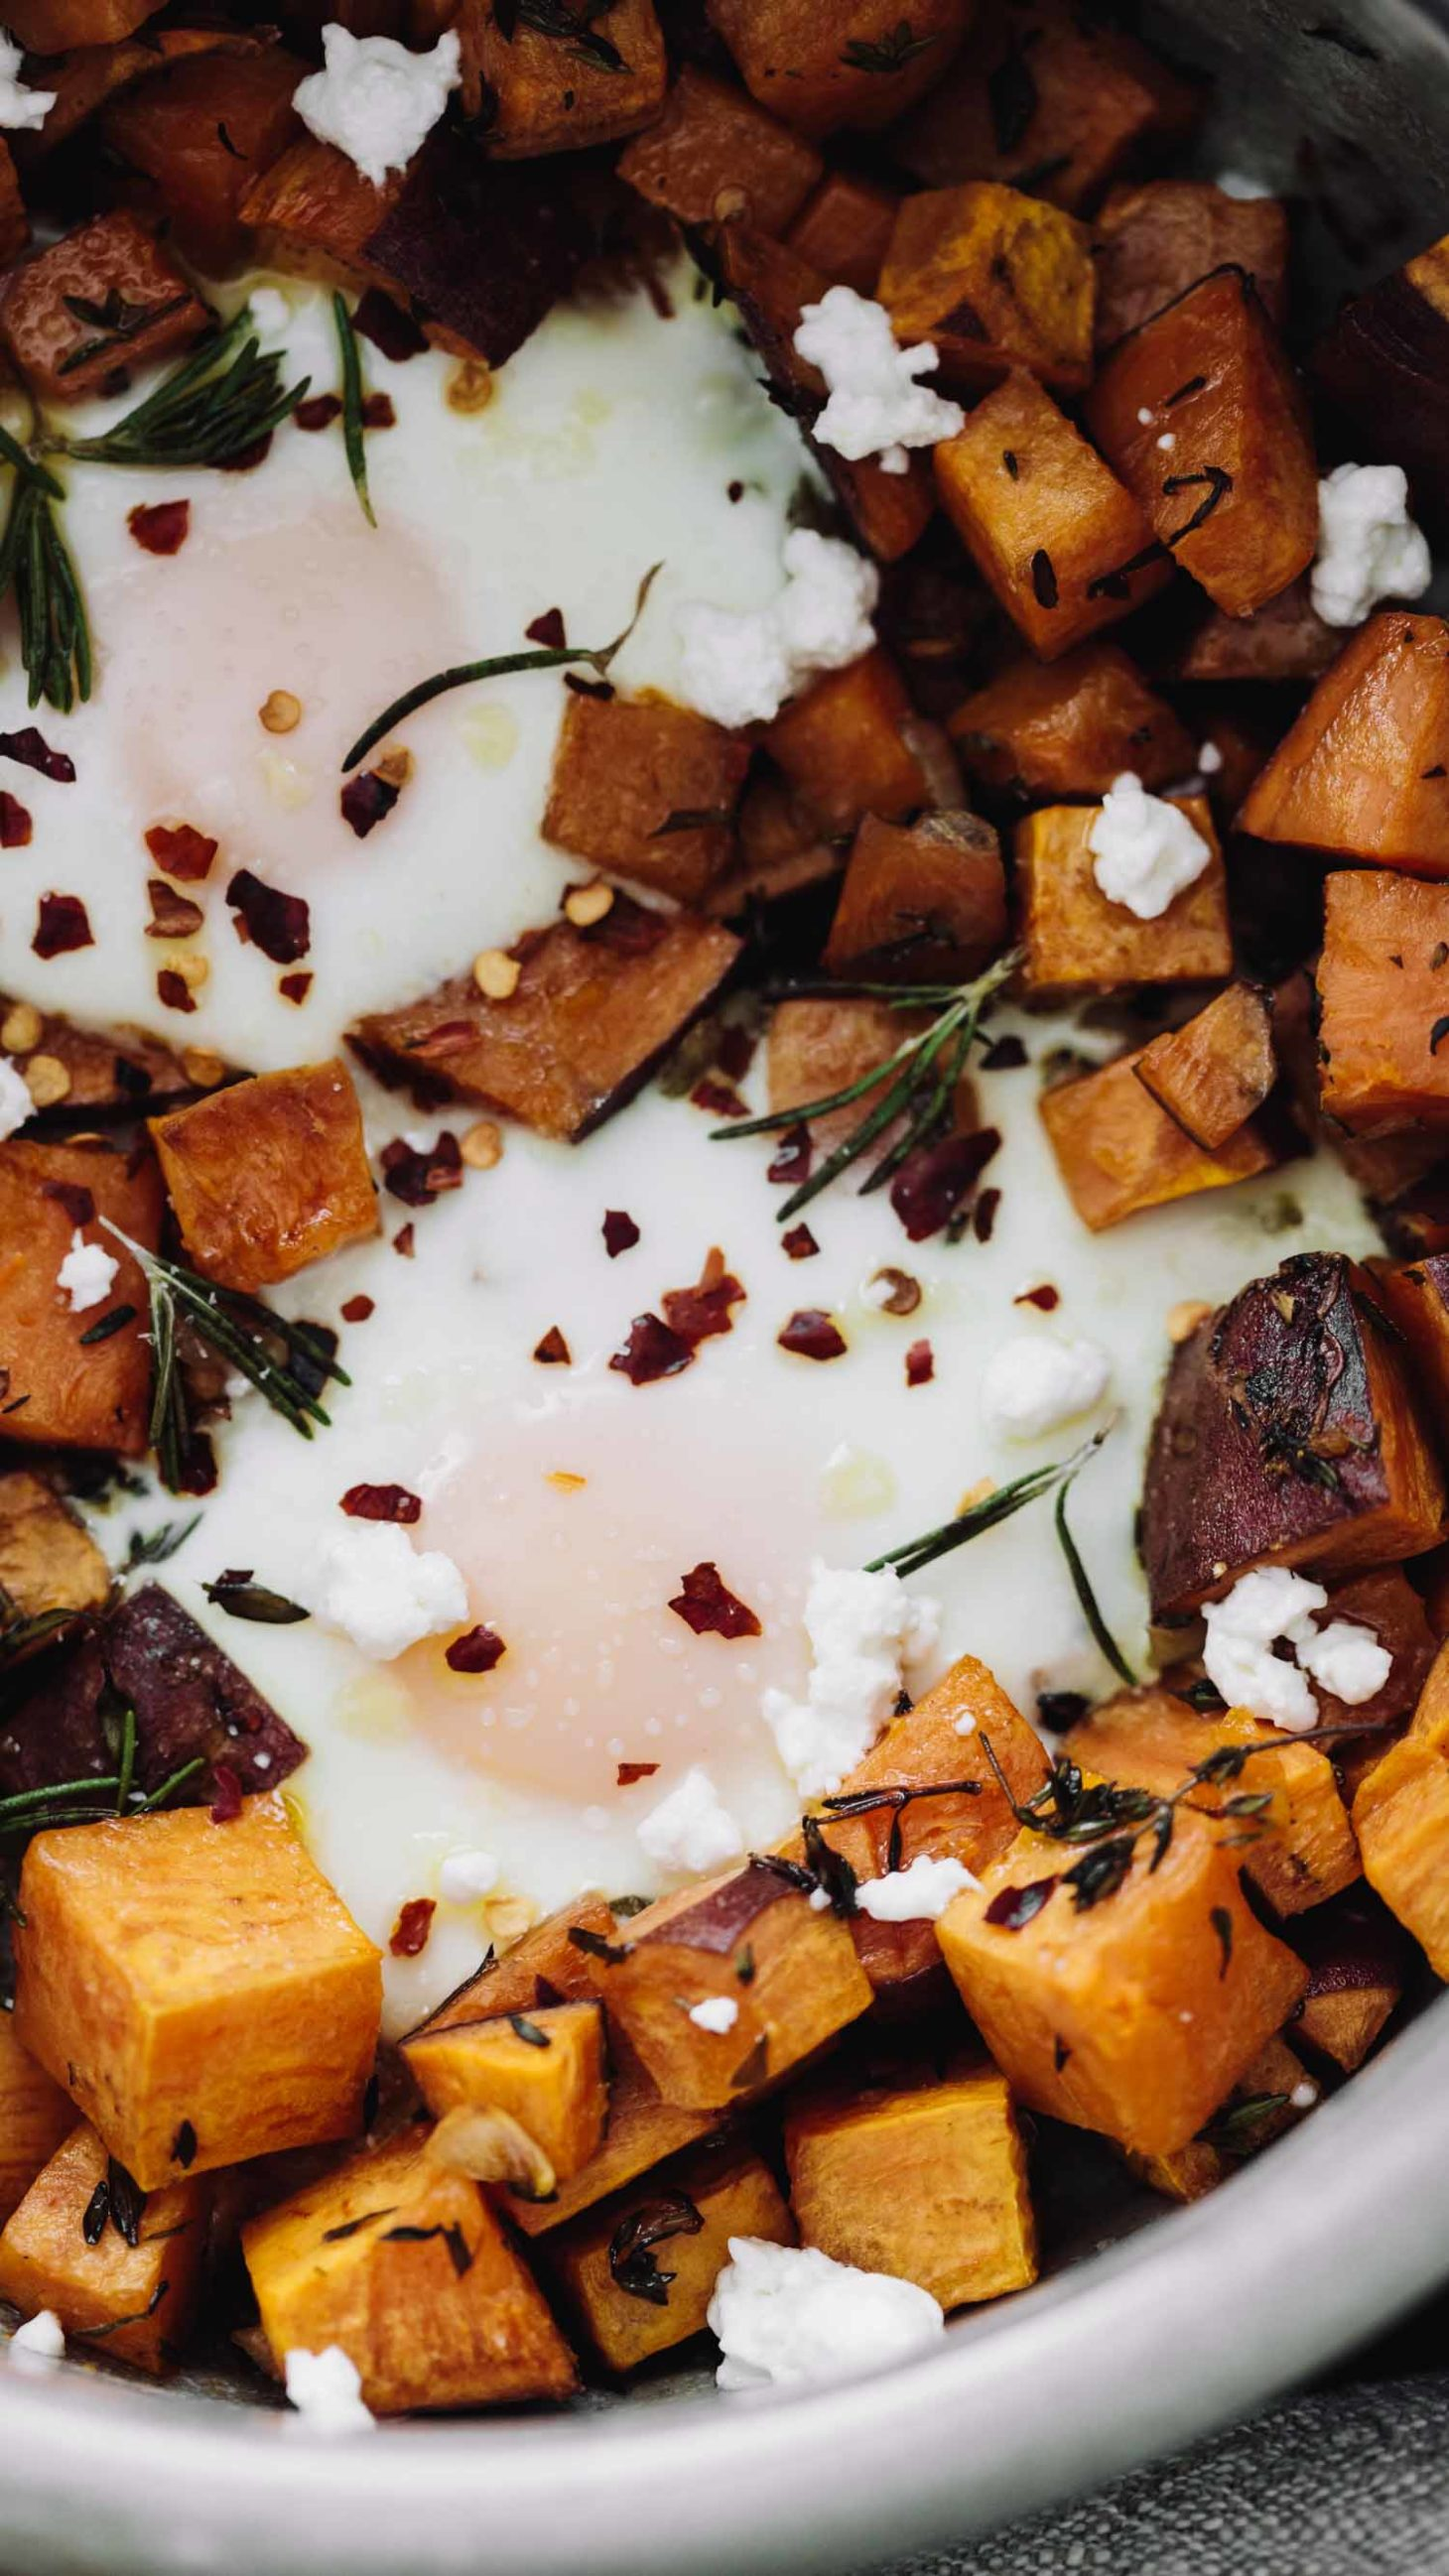 Close-up, overhead photo of roasted sweet potatoes with baked eggs nestled in among the sweet potatoes.